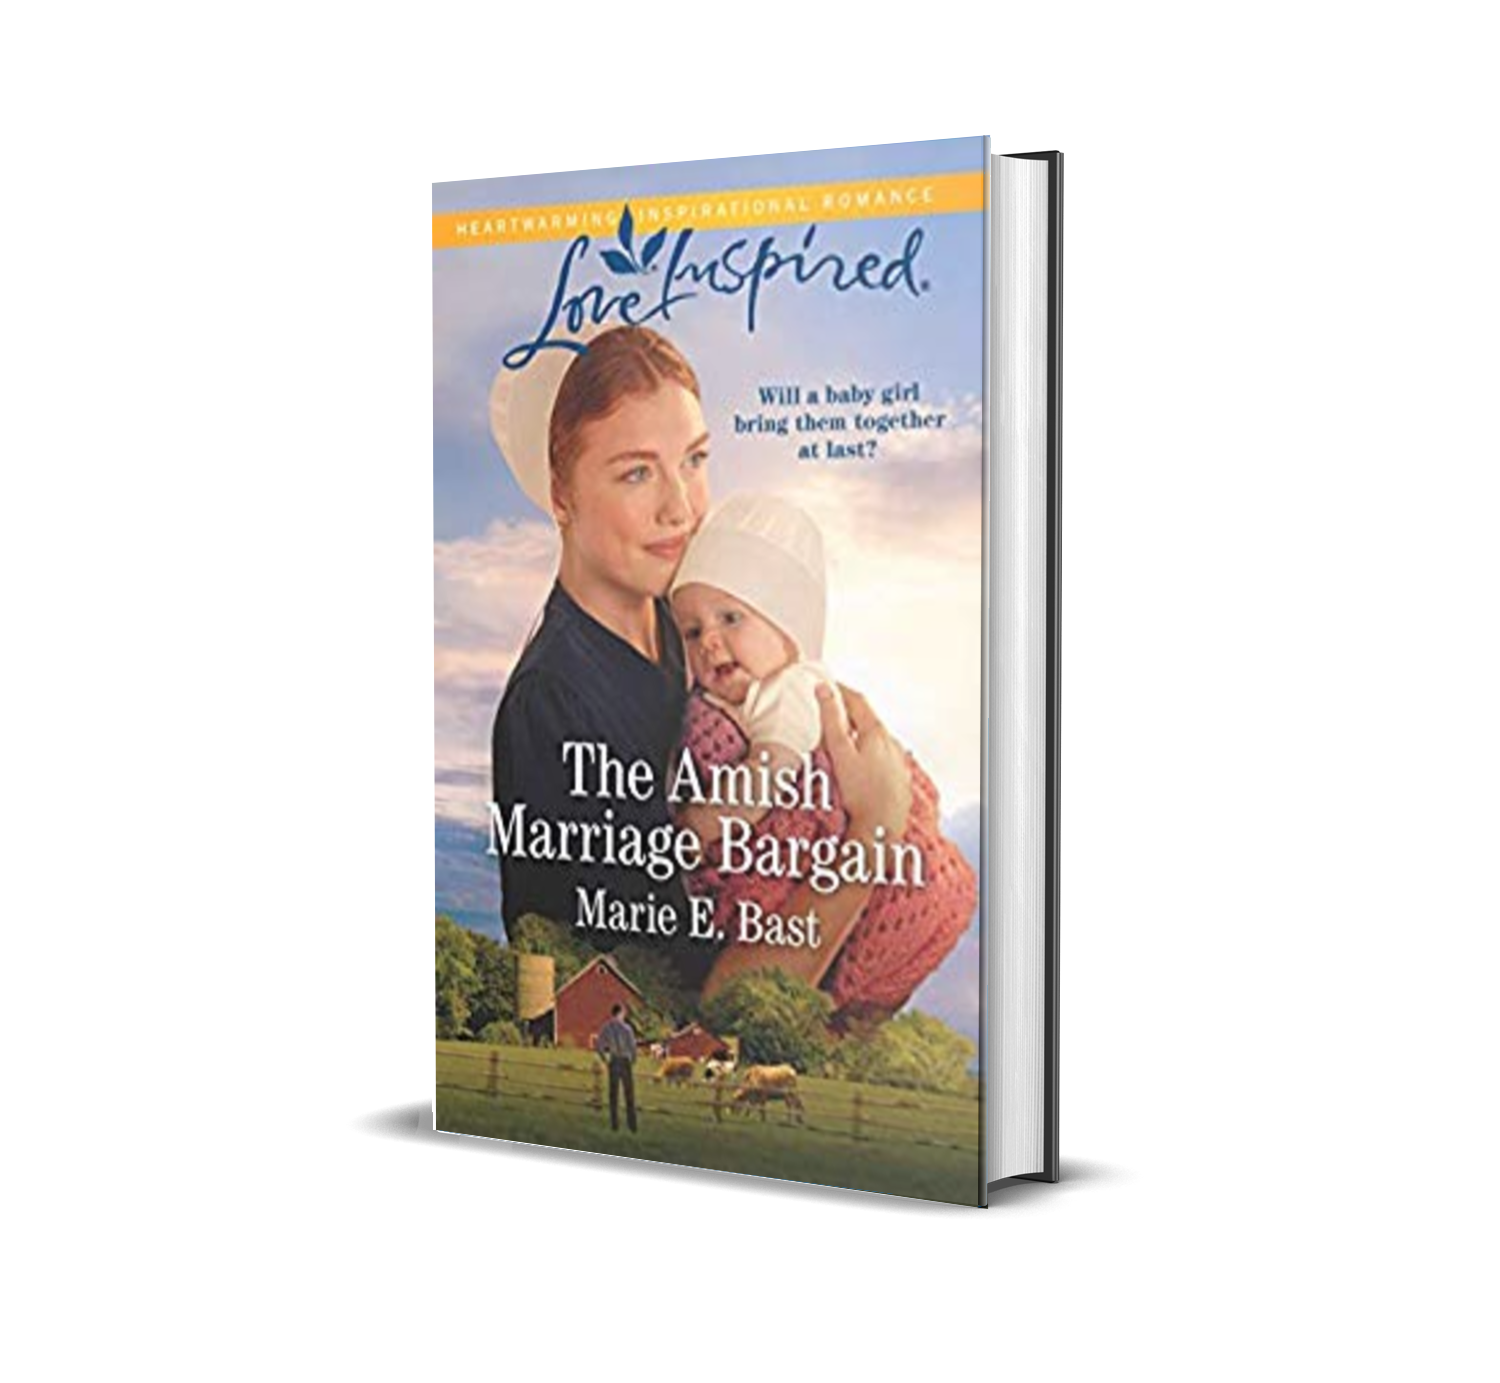 The Amish Marriage Bargain by Marie E. Bast